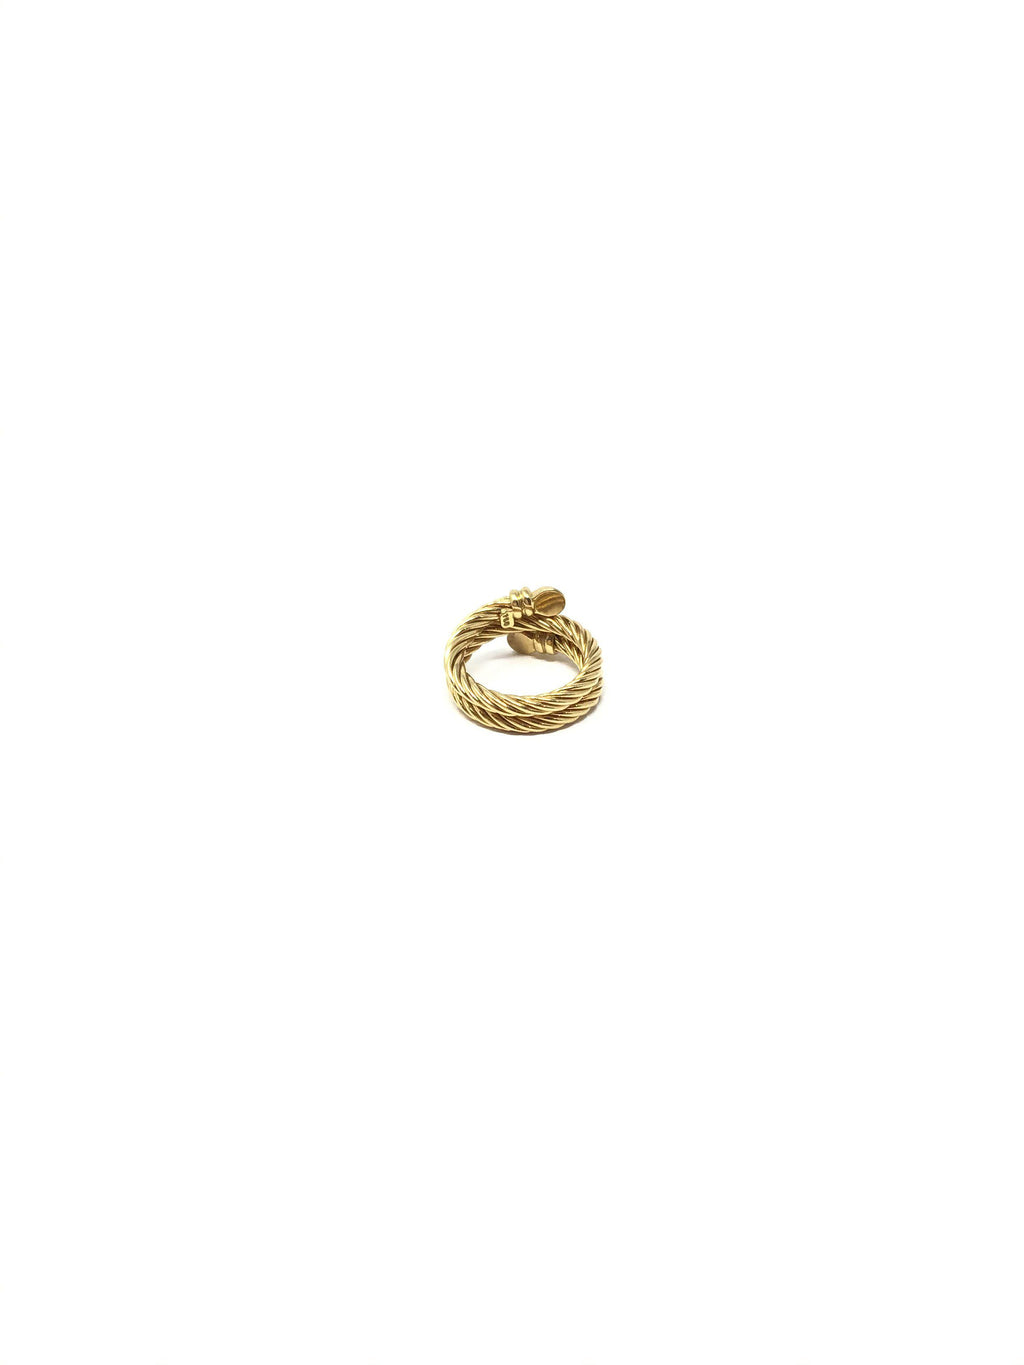 Charriol 18K Gold Twisted Rope Ring